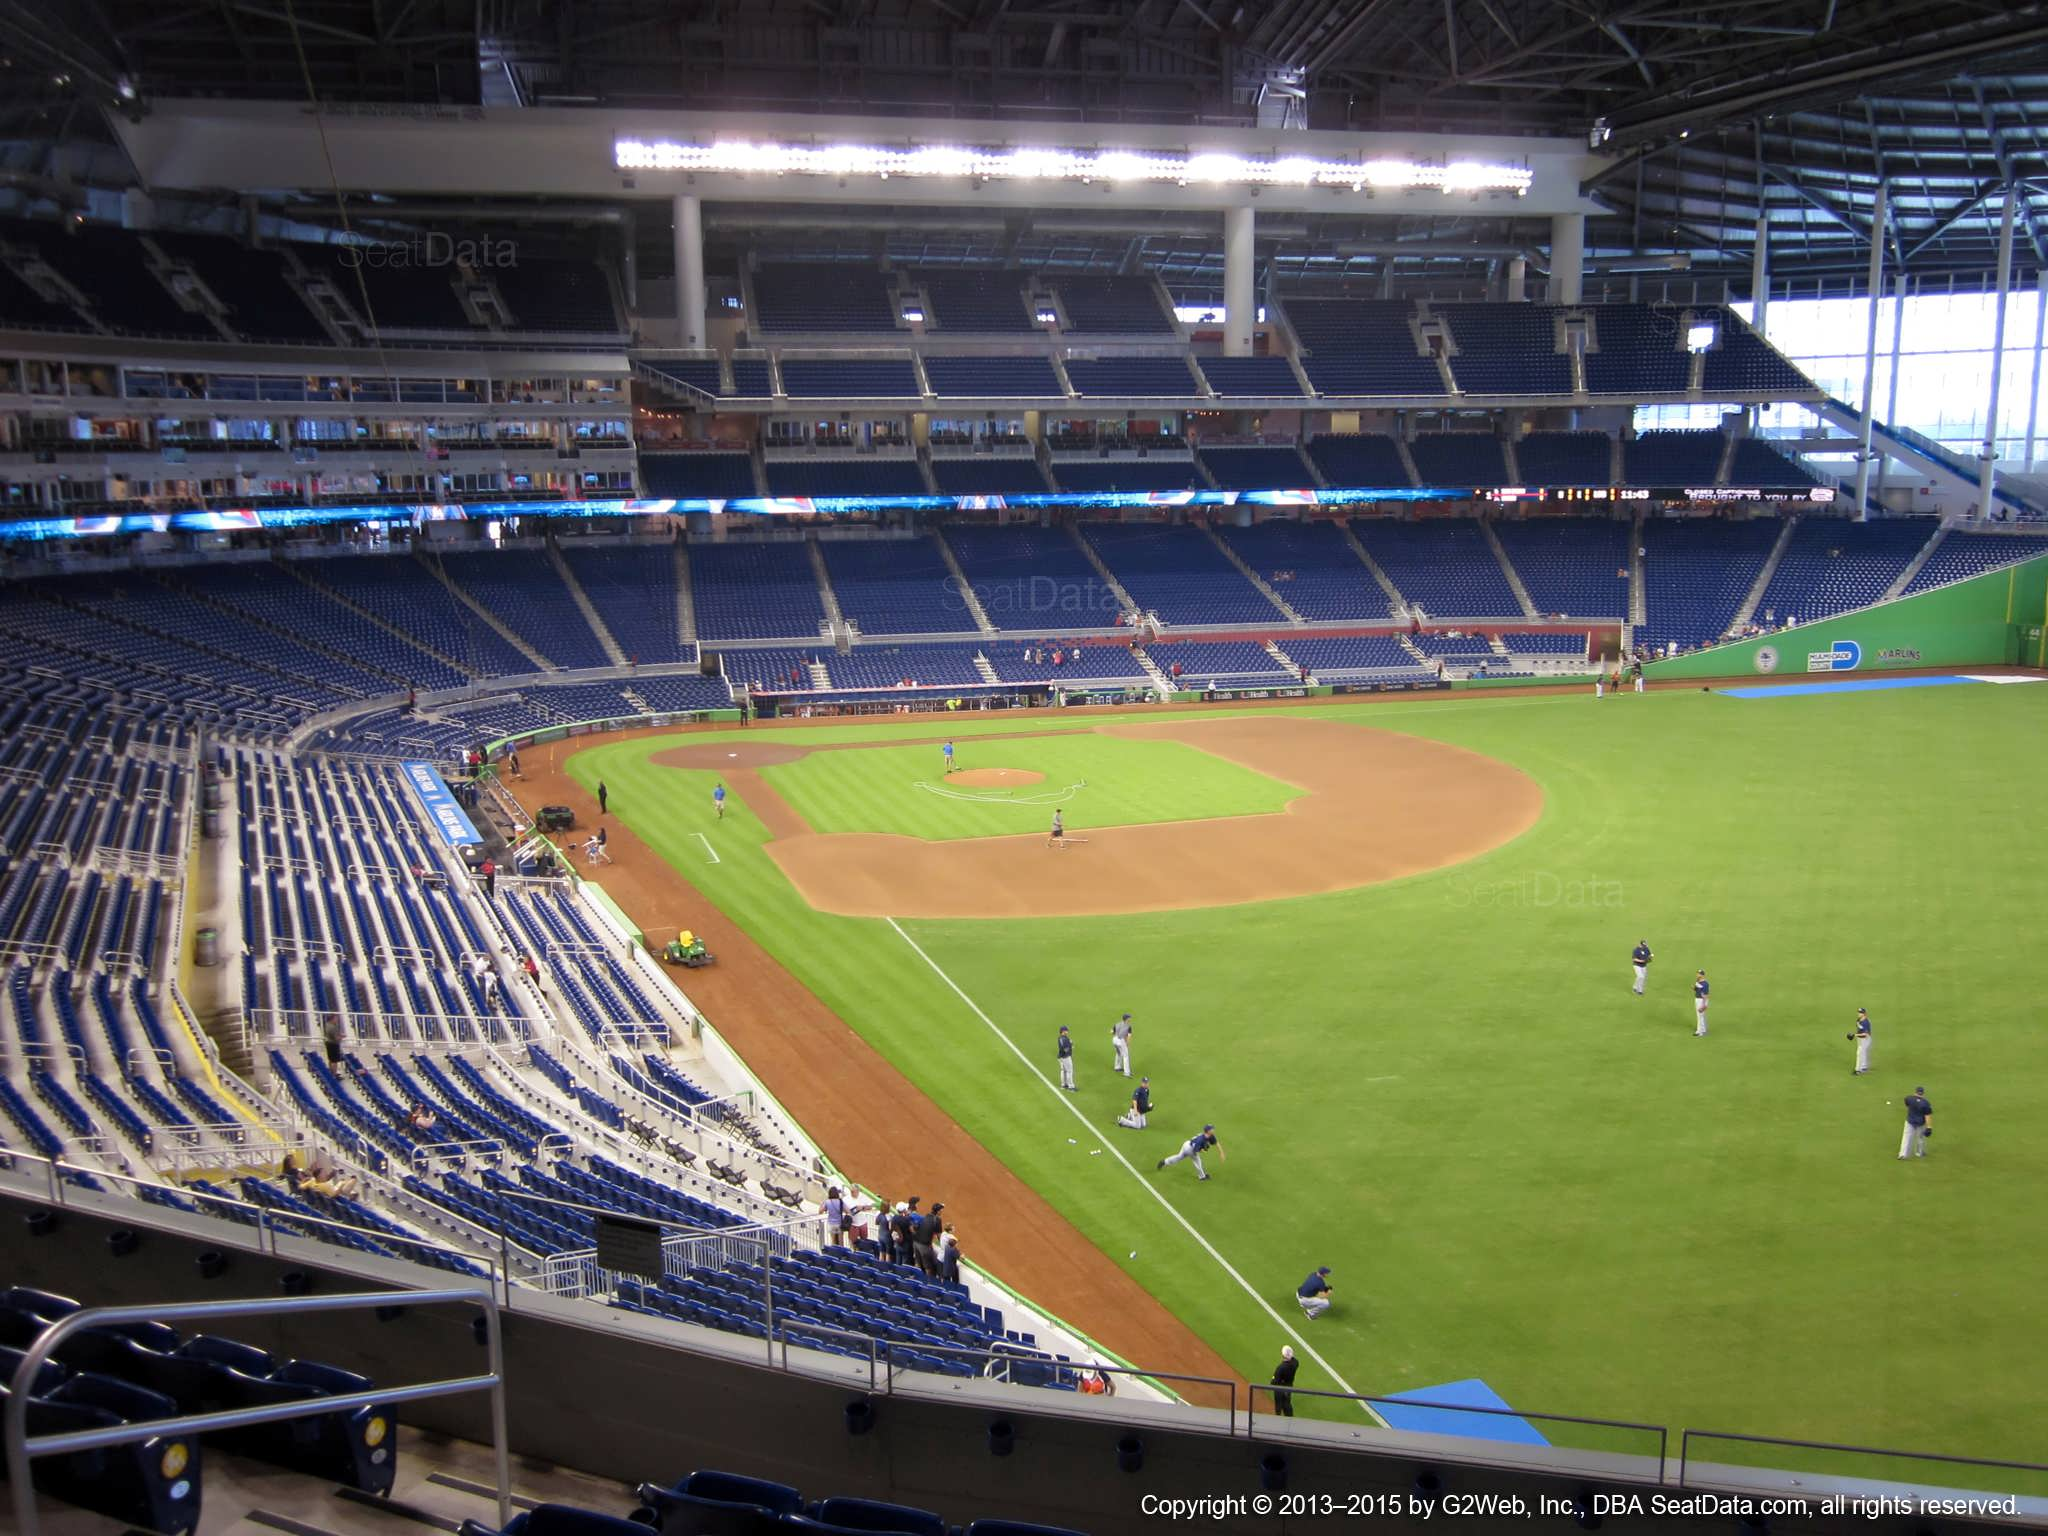 Seat view from section 201 at Marlins Park, home of the Miami Marlins